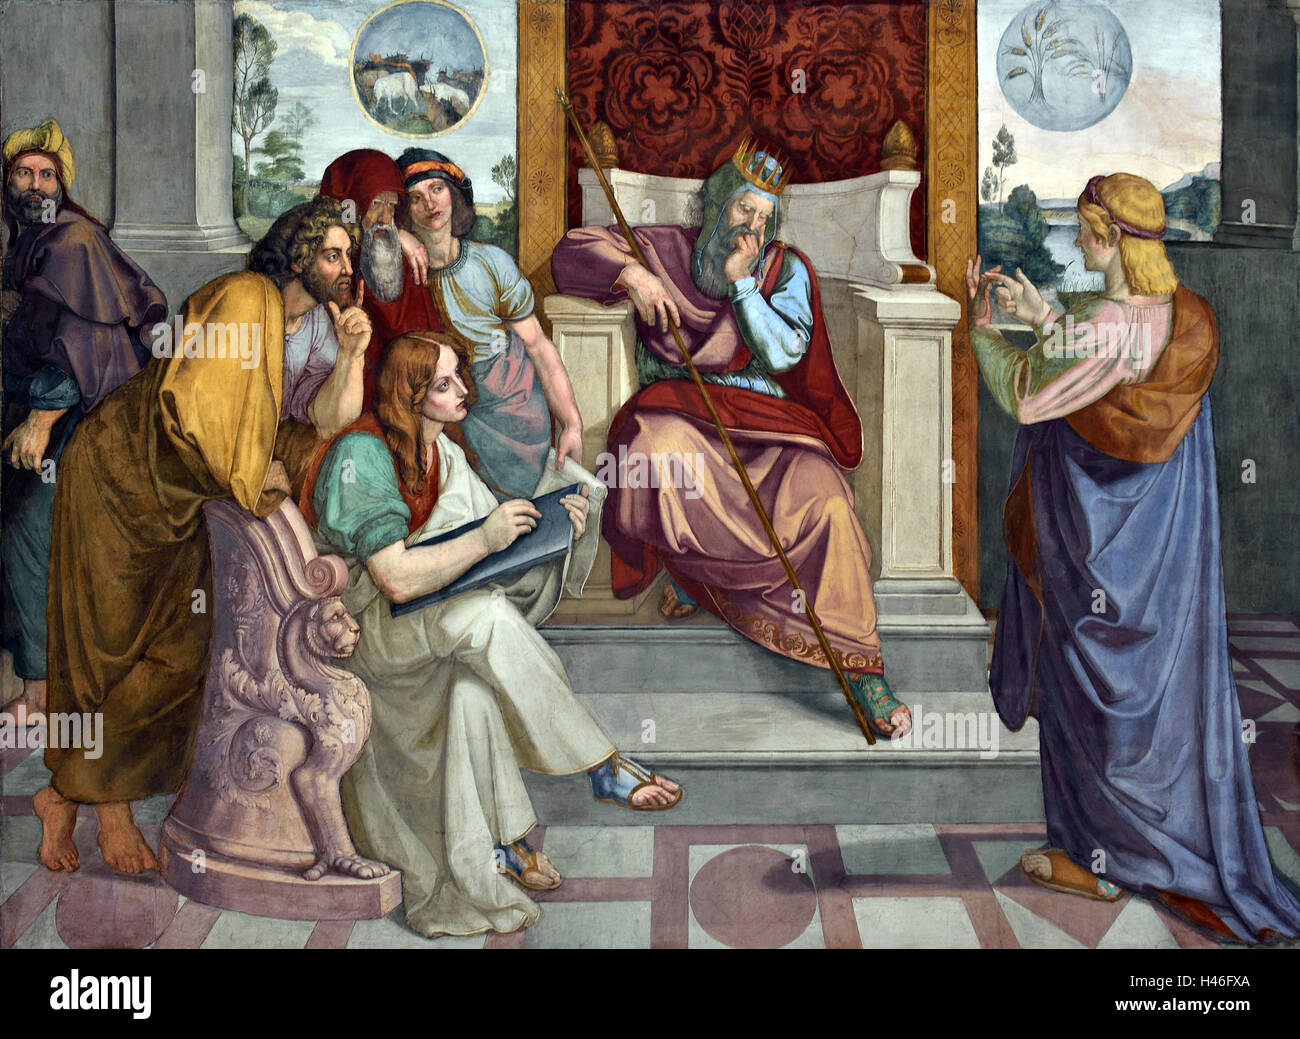 Joseph interprets the dreams of Pharaoh. Wall paintings from the eight-part cycle from Casa Bartholdy in Rome Italy - Stock Image